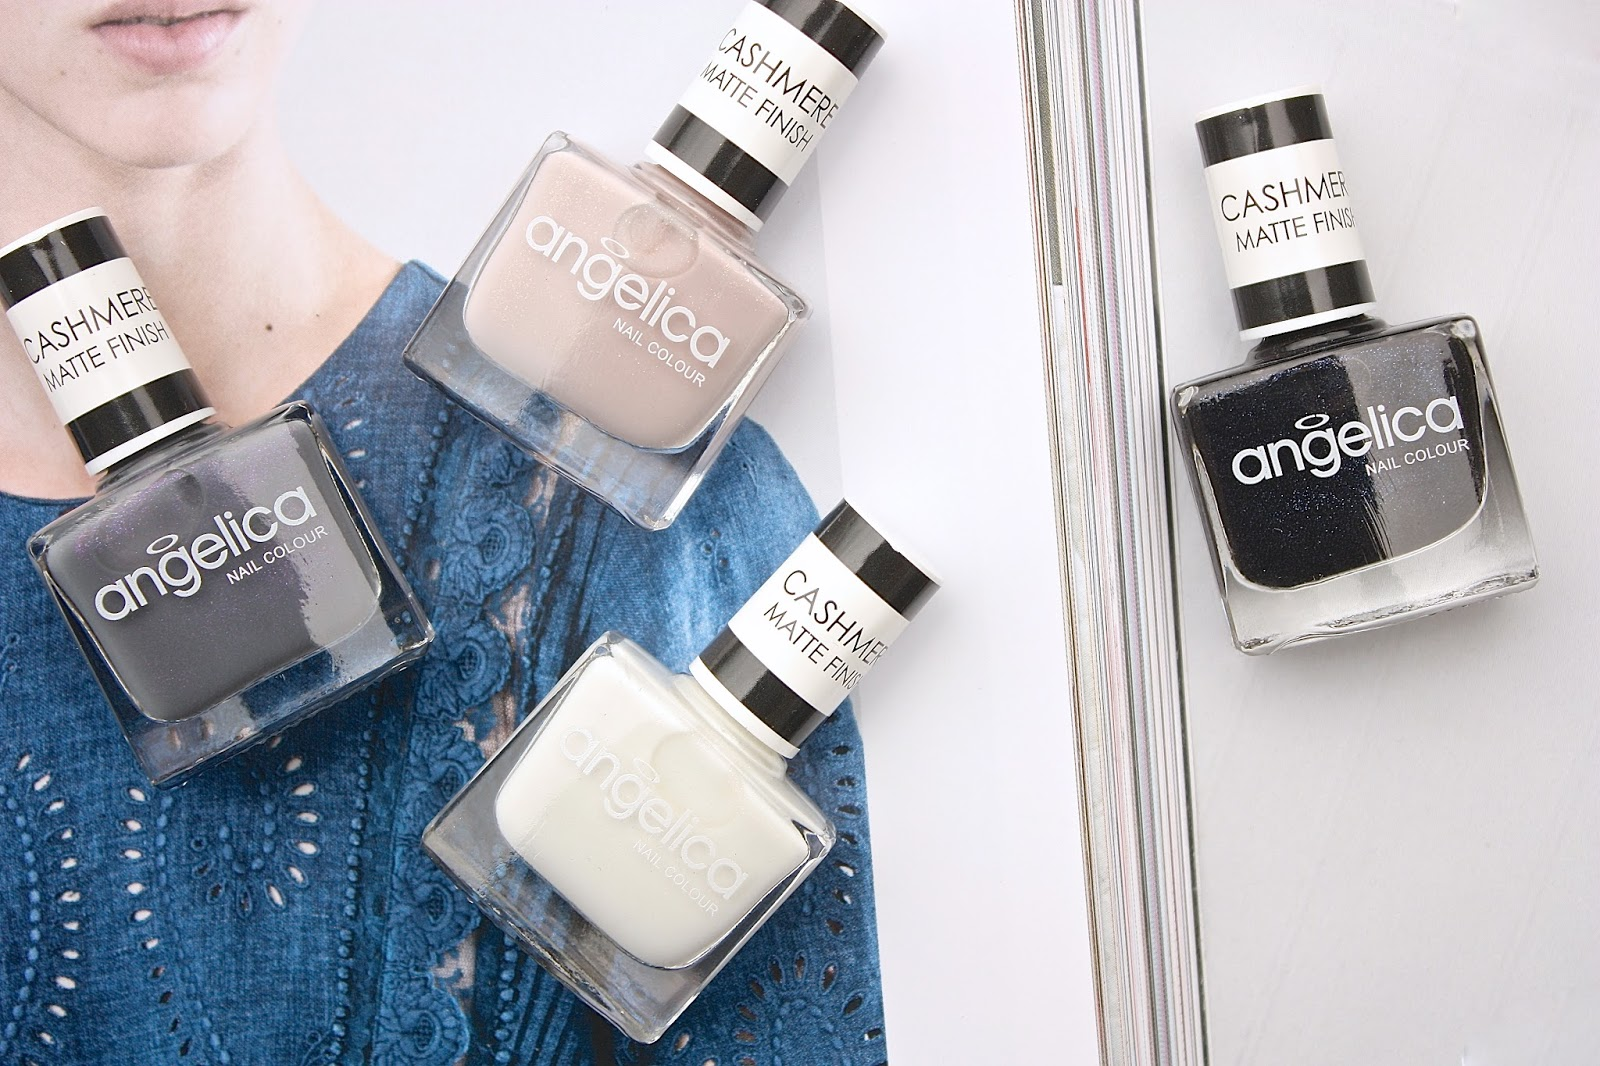 Angelica Cashmere Nail Polishes Swatches